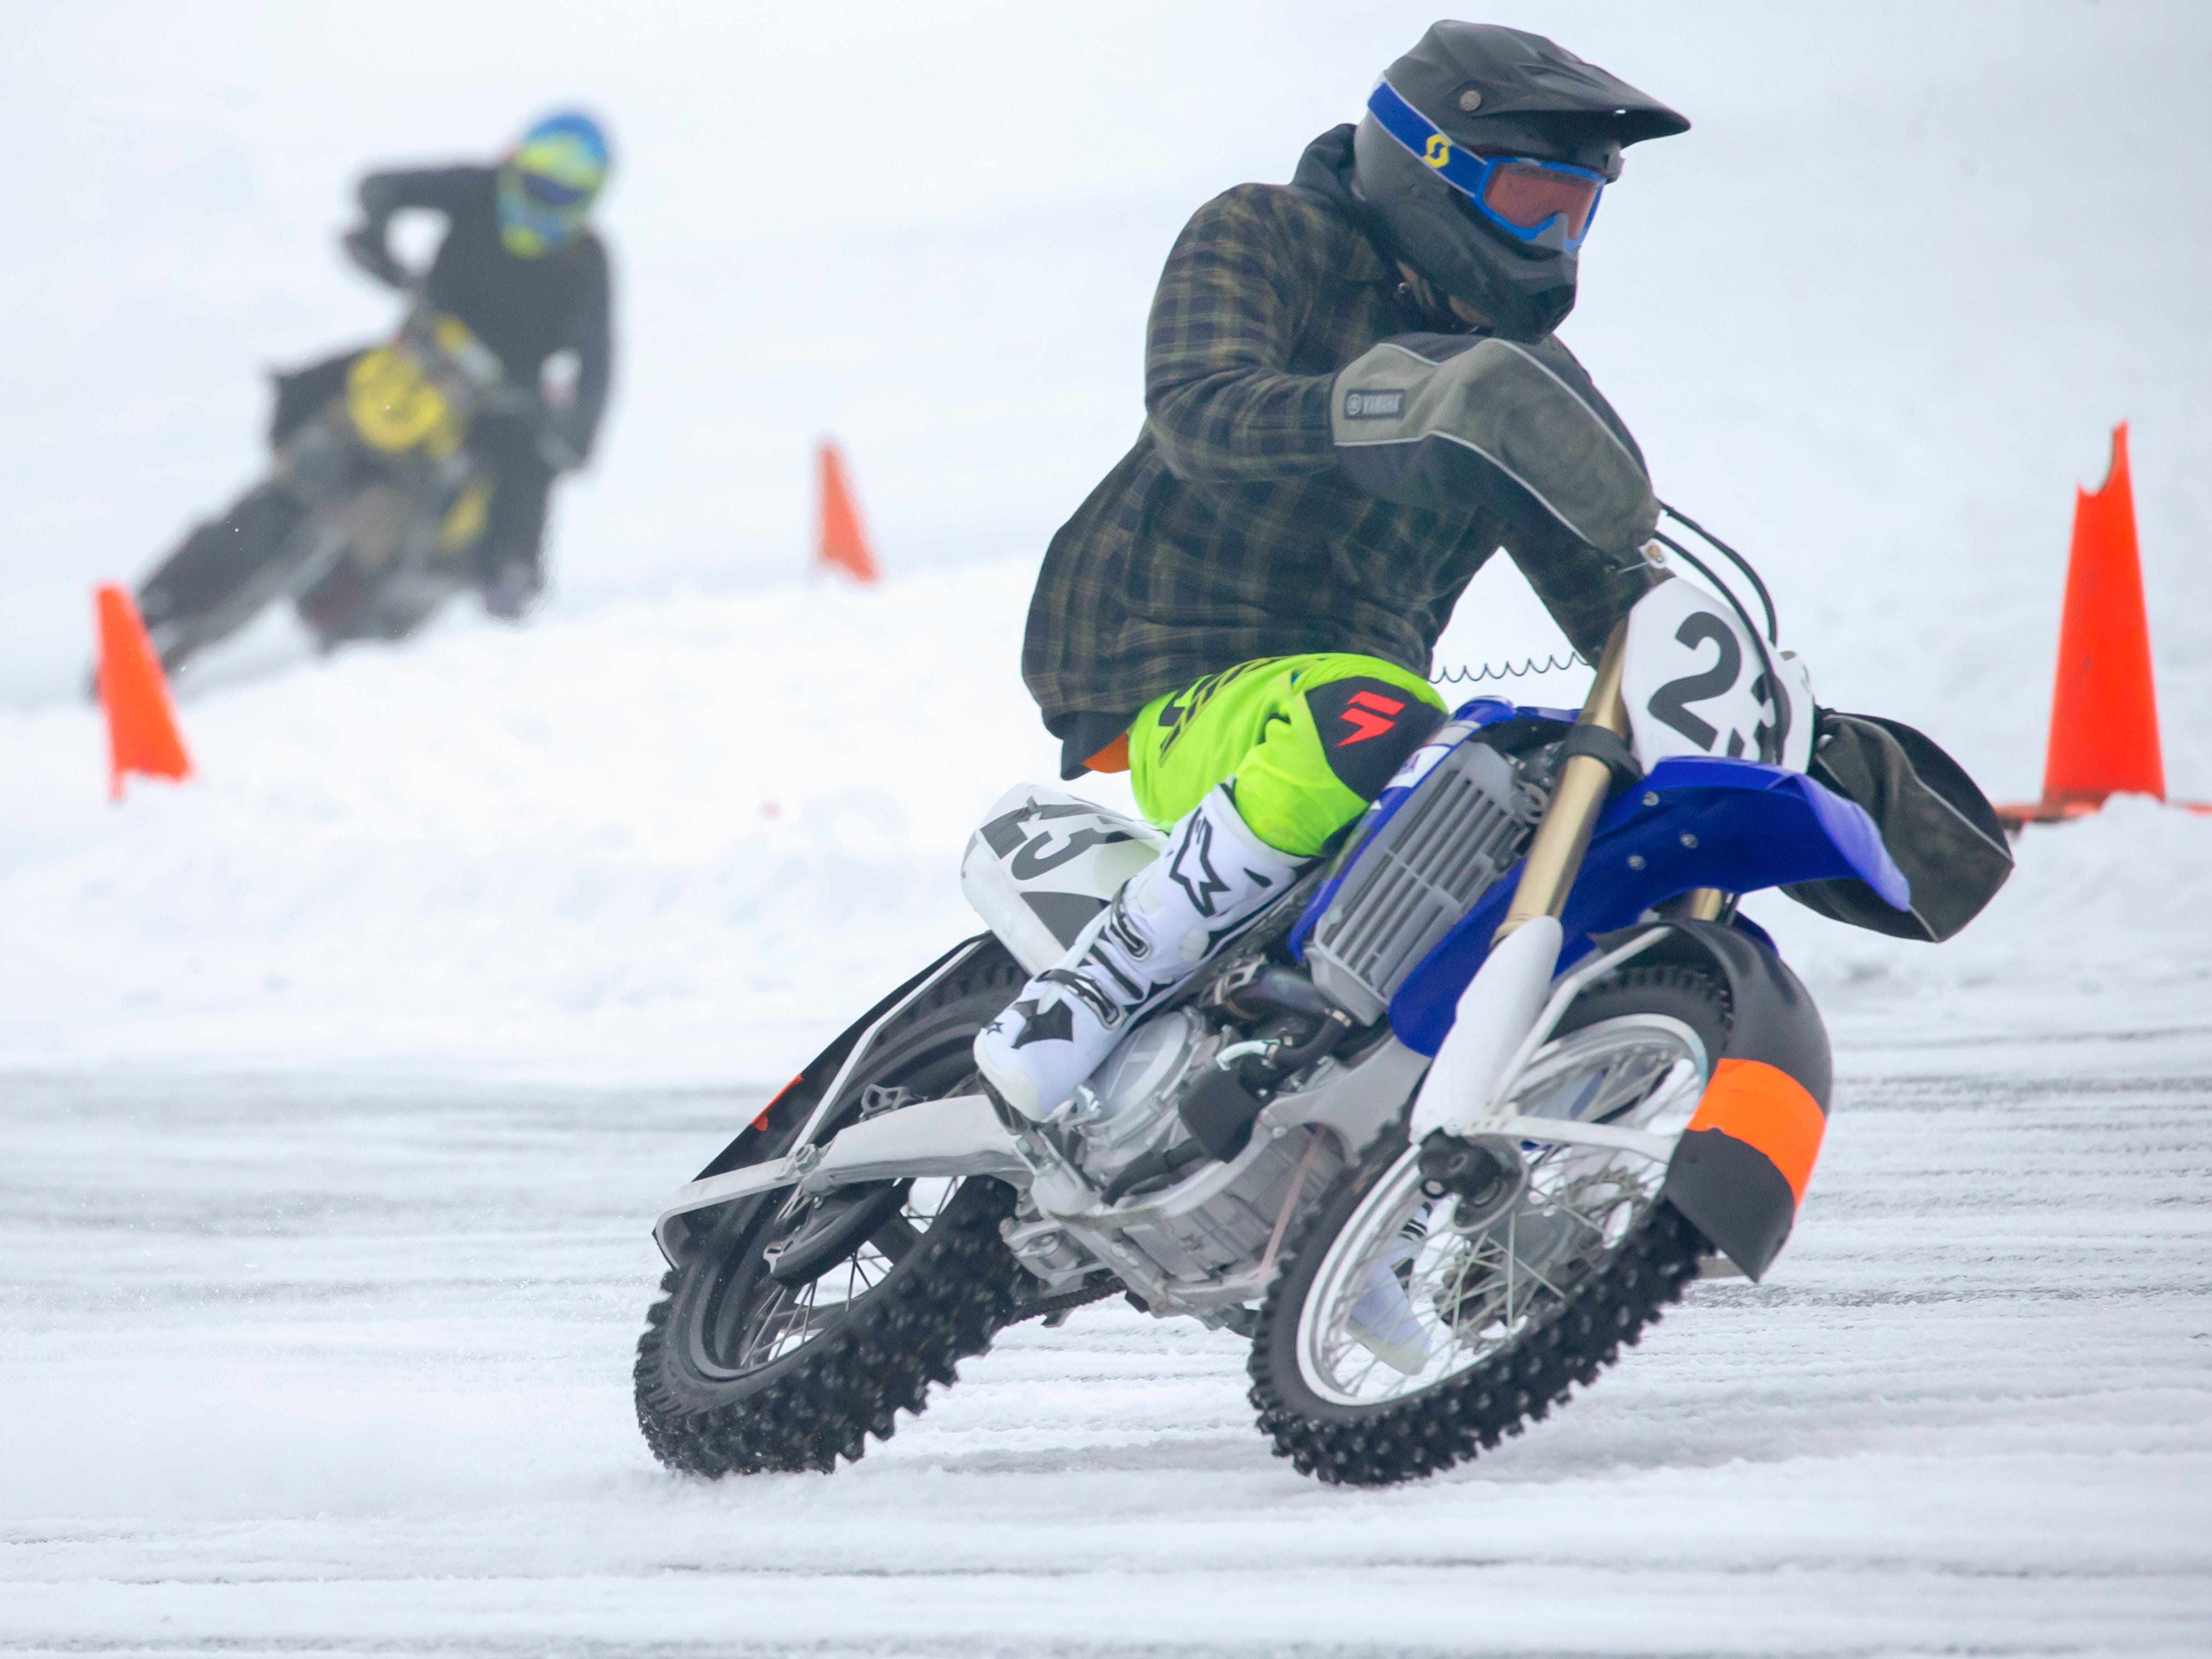 Jake Drummond of Oshkosh placed second in the 450 TT Main racing during the Otter Street Fishing Club Winter Fisheree at Miller's Bay in Menominee Park on Saturday, Feb. 2, 2019.